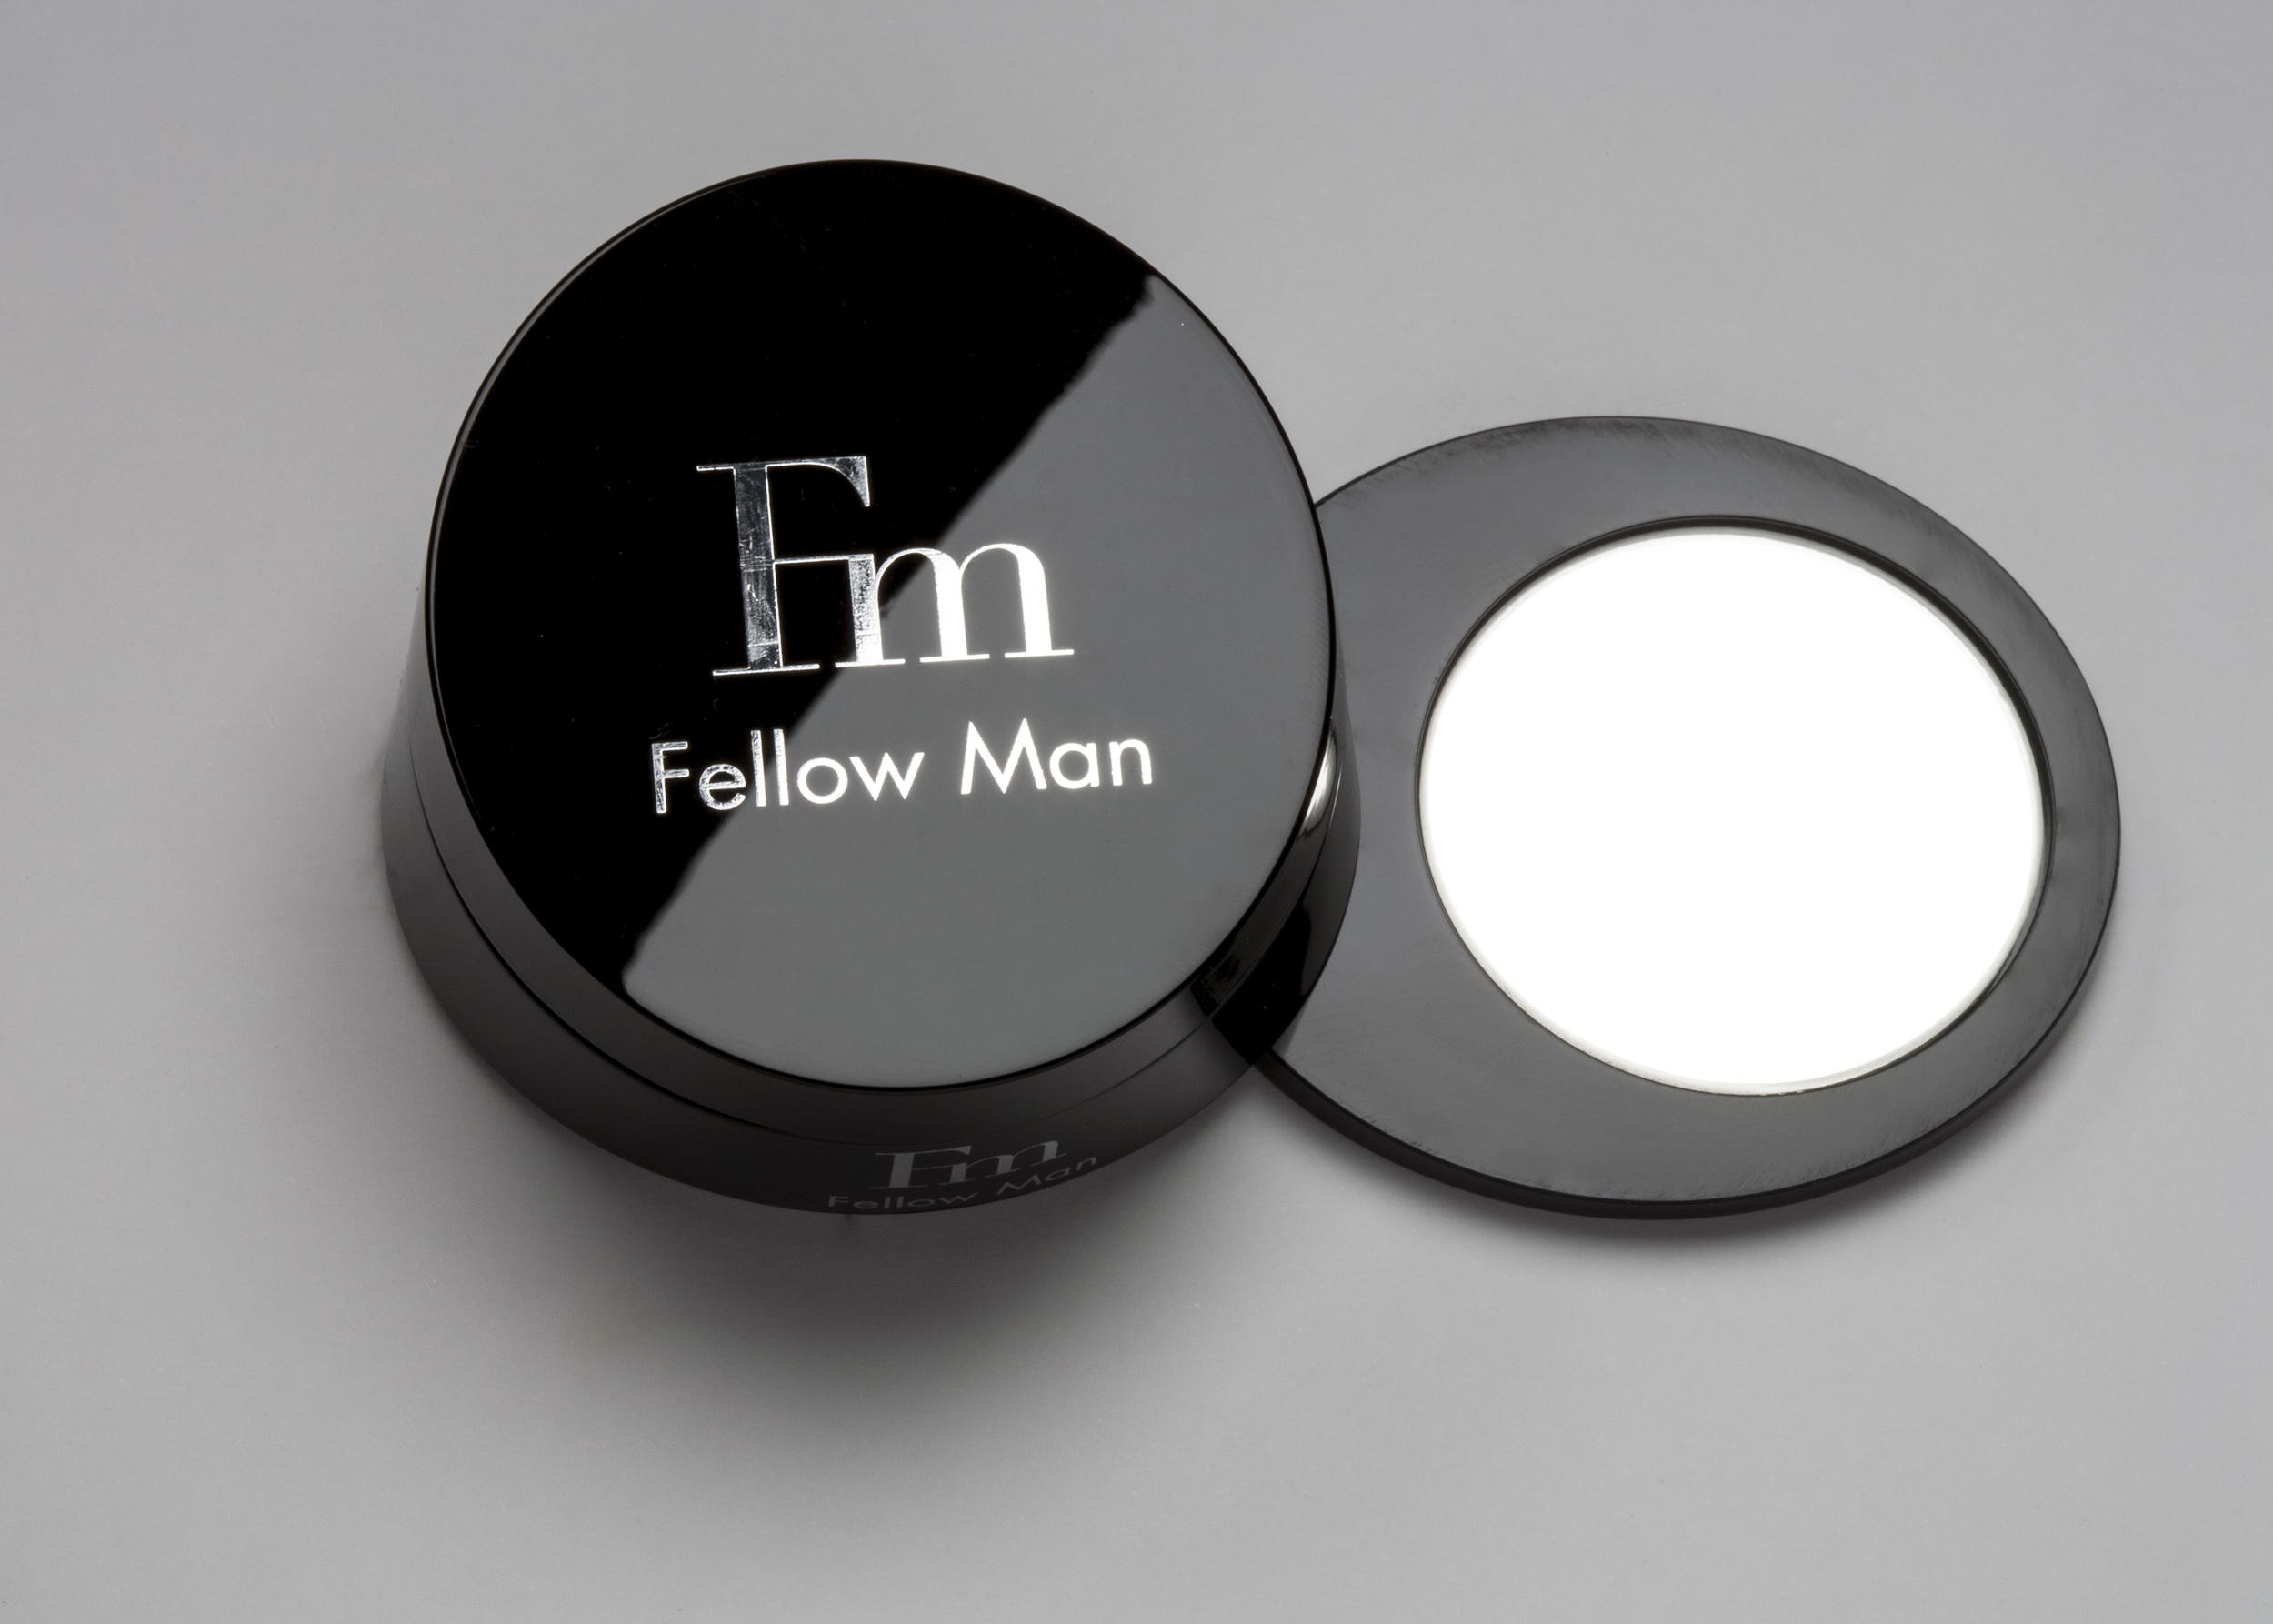 CONCEPT   Fellow Man is a men's skin care line.We decided to have a brand specifically for men because it is a growing market. Our target audience has a refined taste and is looking for quality products designed specifically for them.